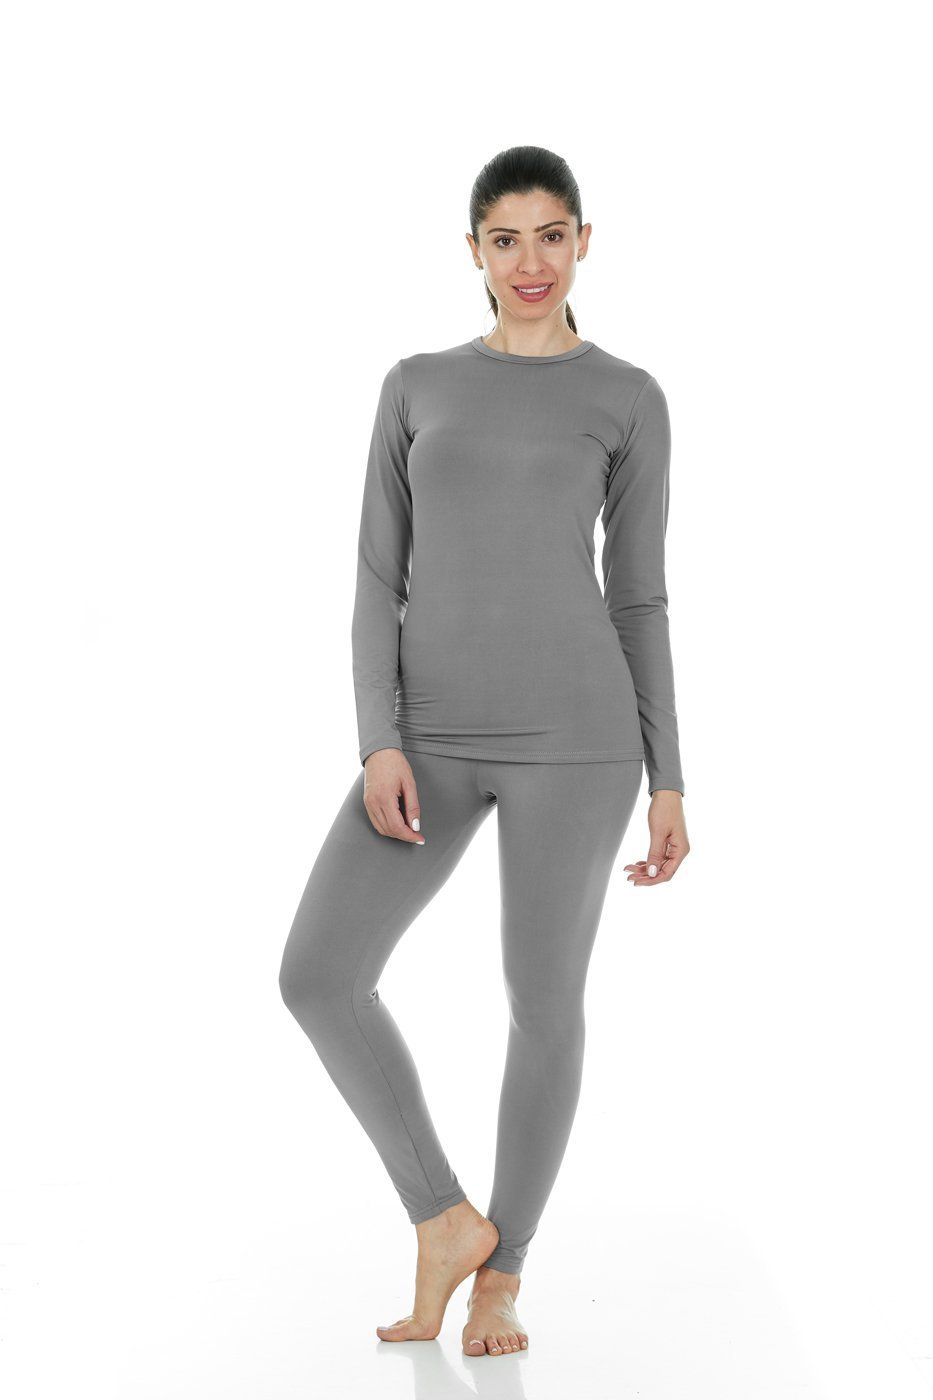 Thermajane Women's Ultra Soft Thermal Underwear Long Johns Set with Fleece Lined (X-Large, Grey) by Thermajane